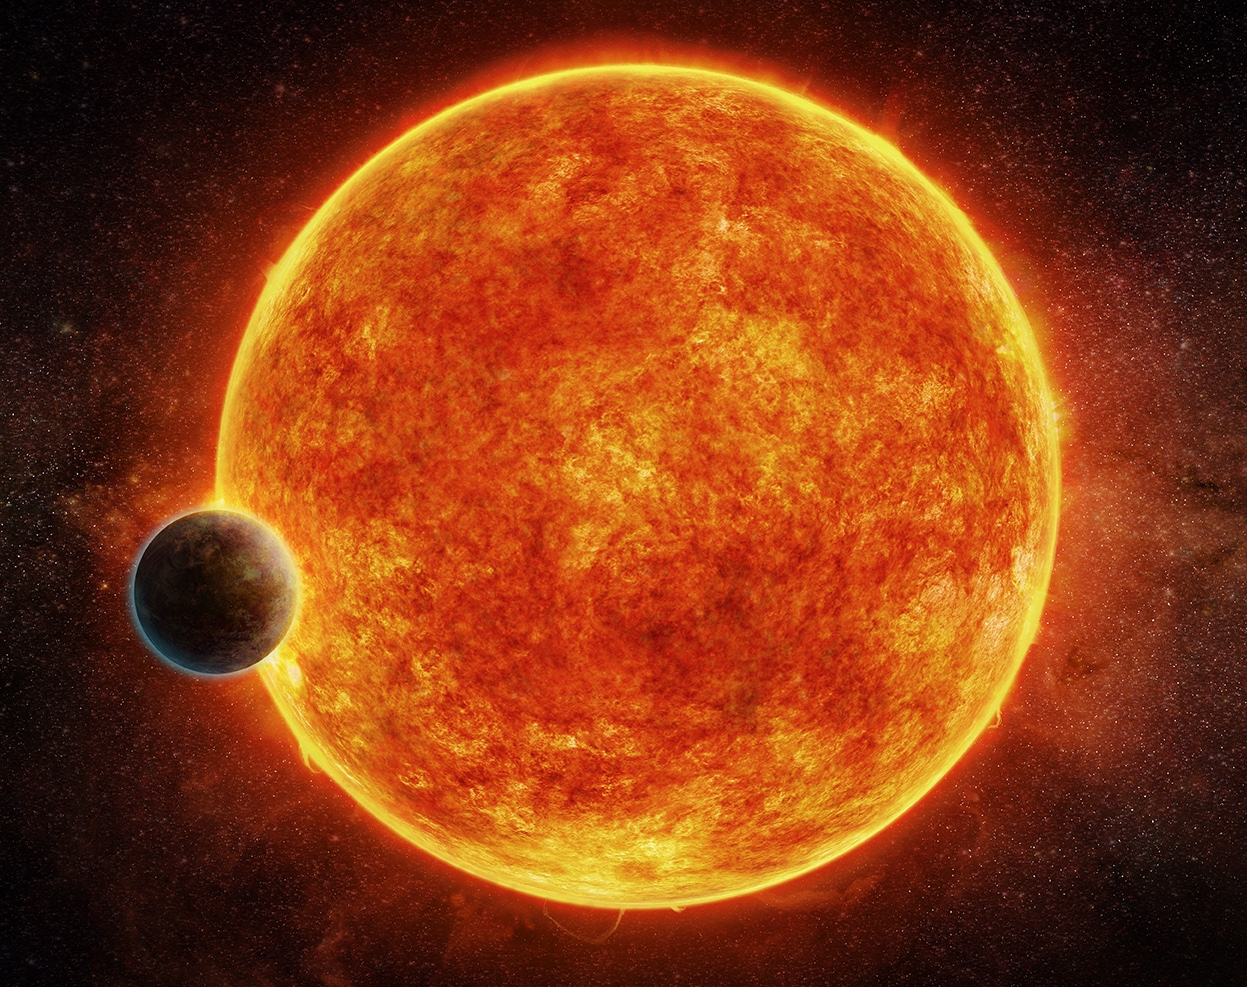 An artist's impression of the newly discovered rocky exoplanet, LHS 1140b. Credit: M. Weiss/CfA